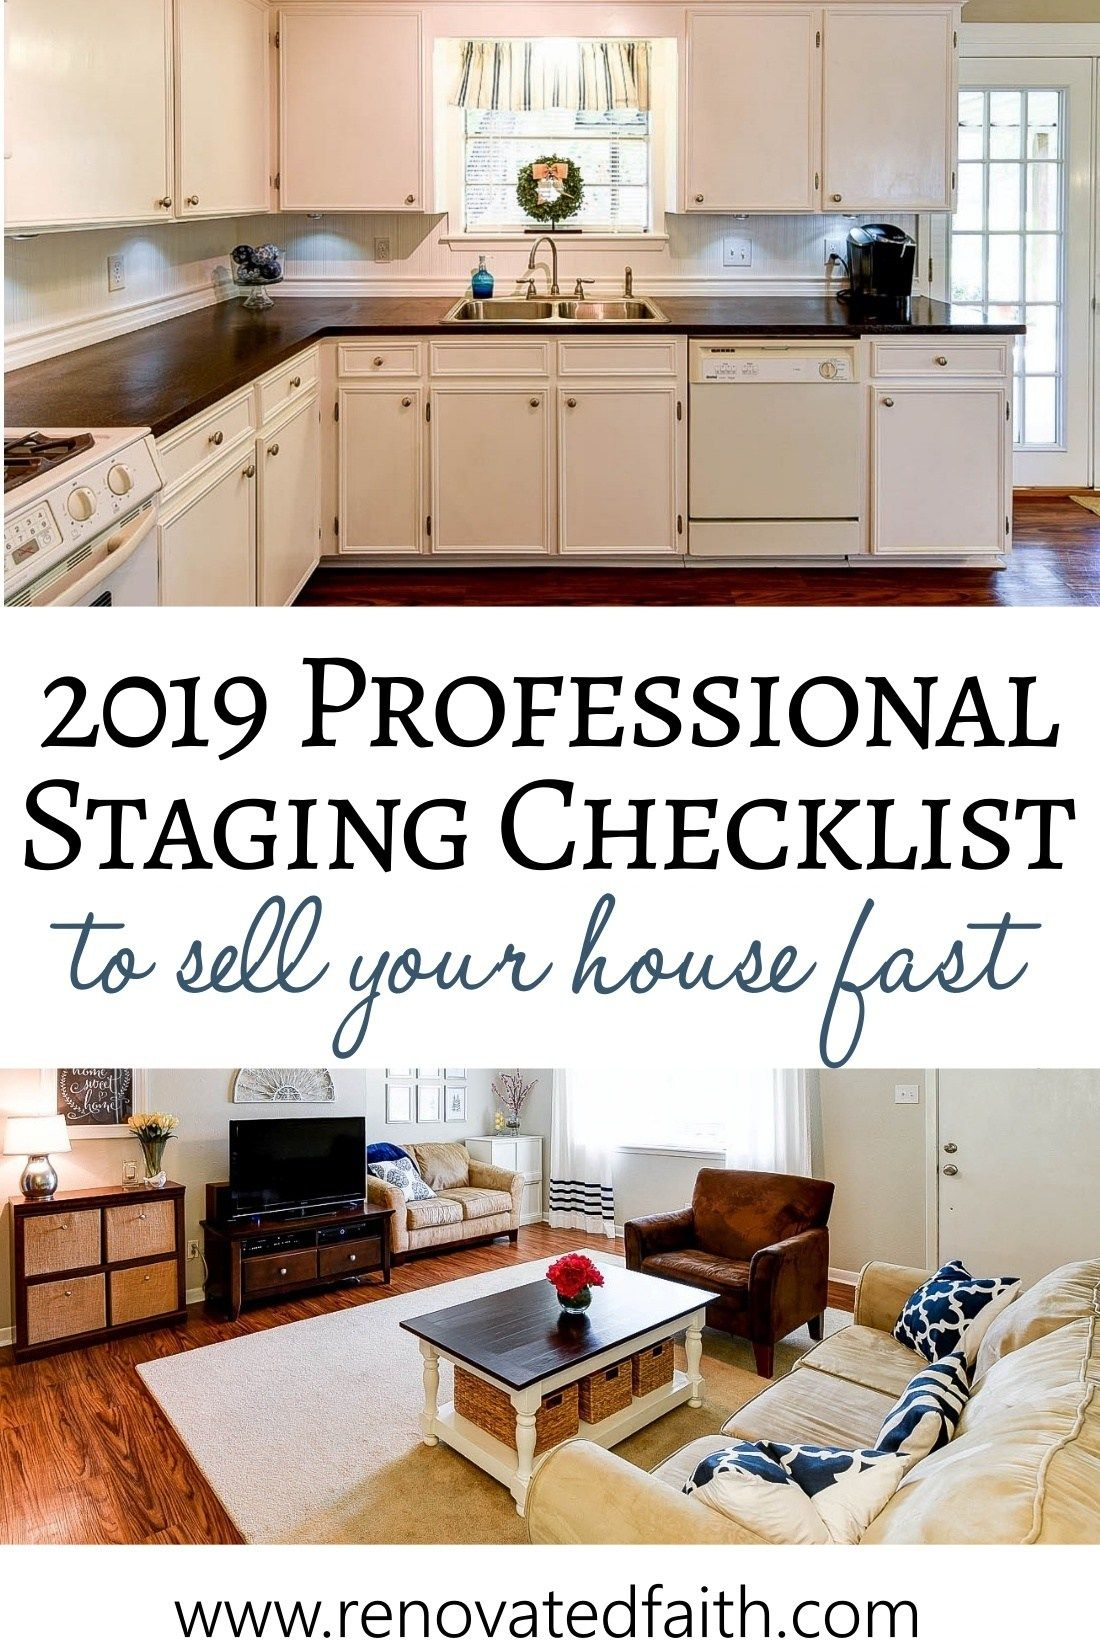 27 Tips For Selling Your House Fast In 2020 Home Staging